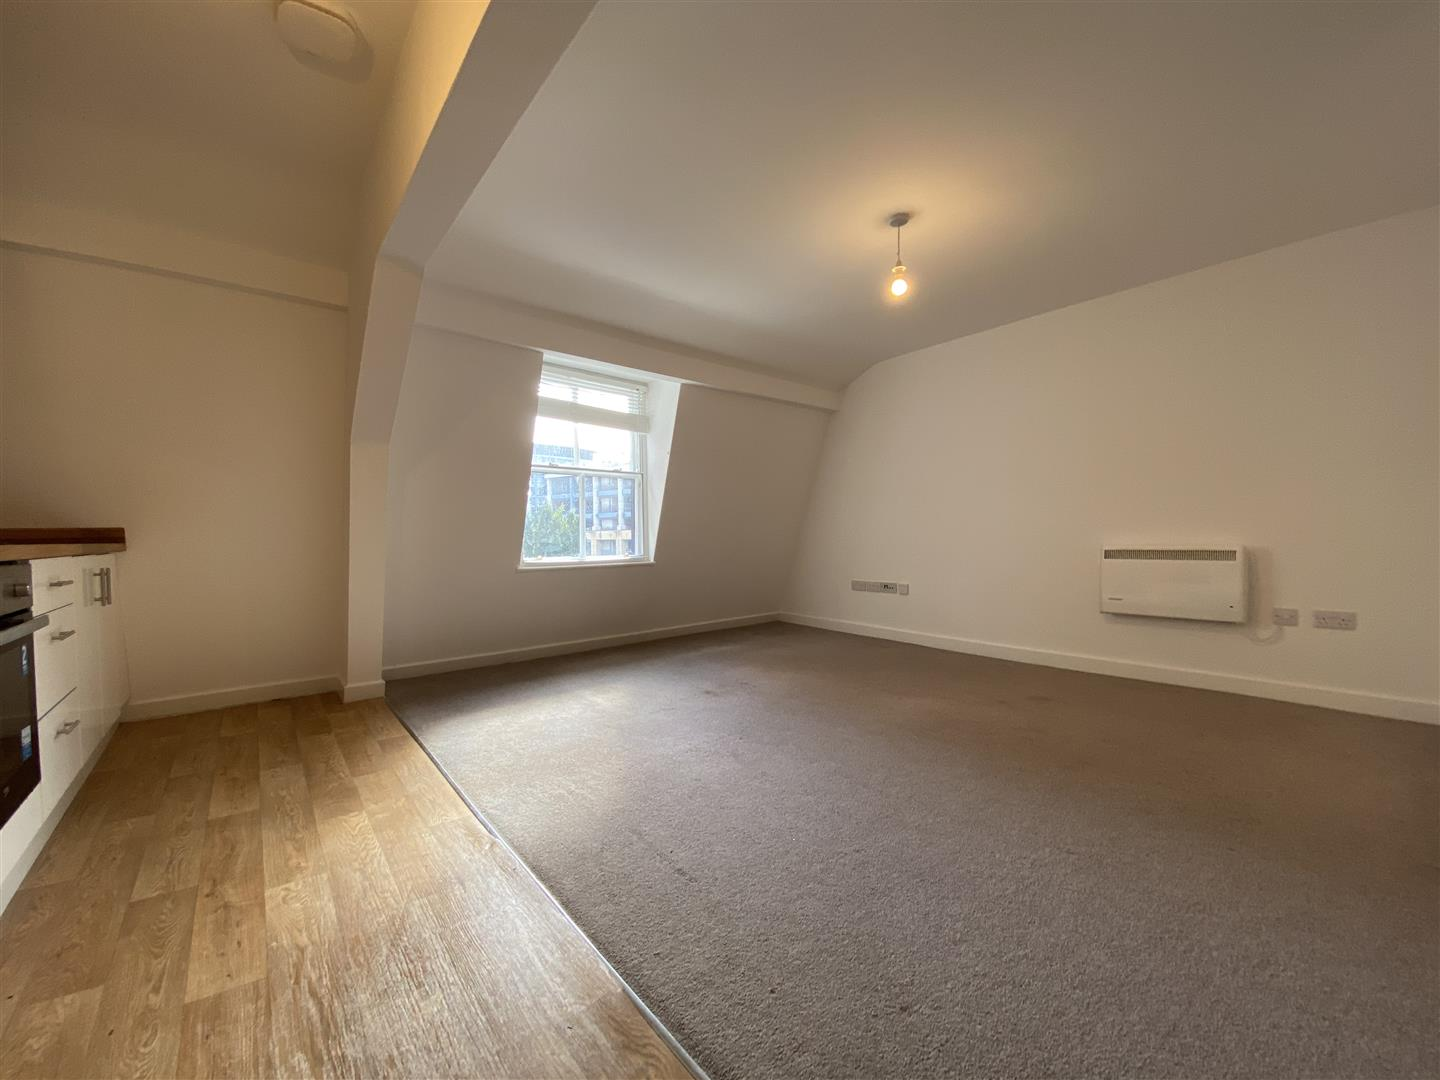 Charlton's Bonds Newcastle Upon Tyne, 2 Bedrooms  Apartment - conversion ,For Sale